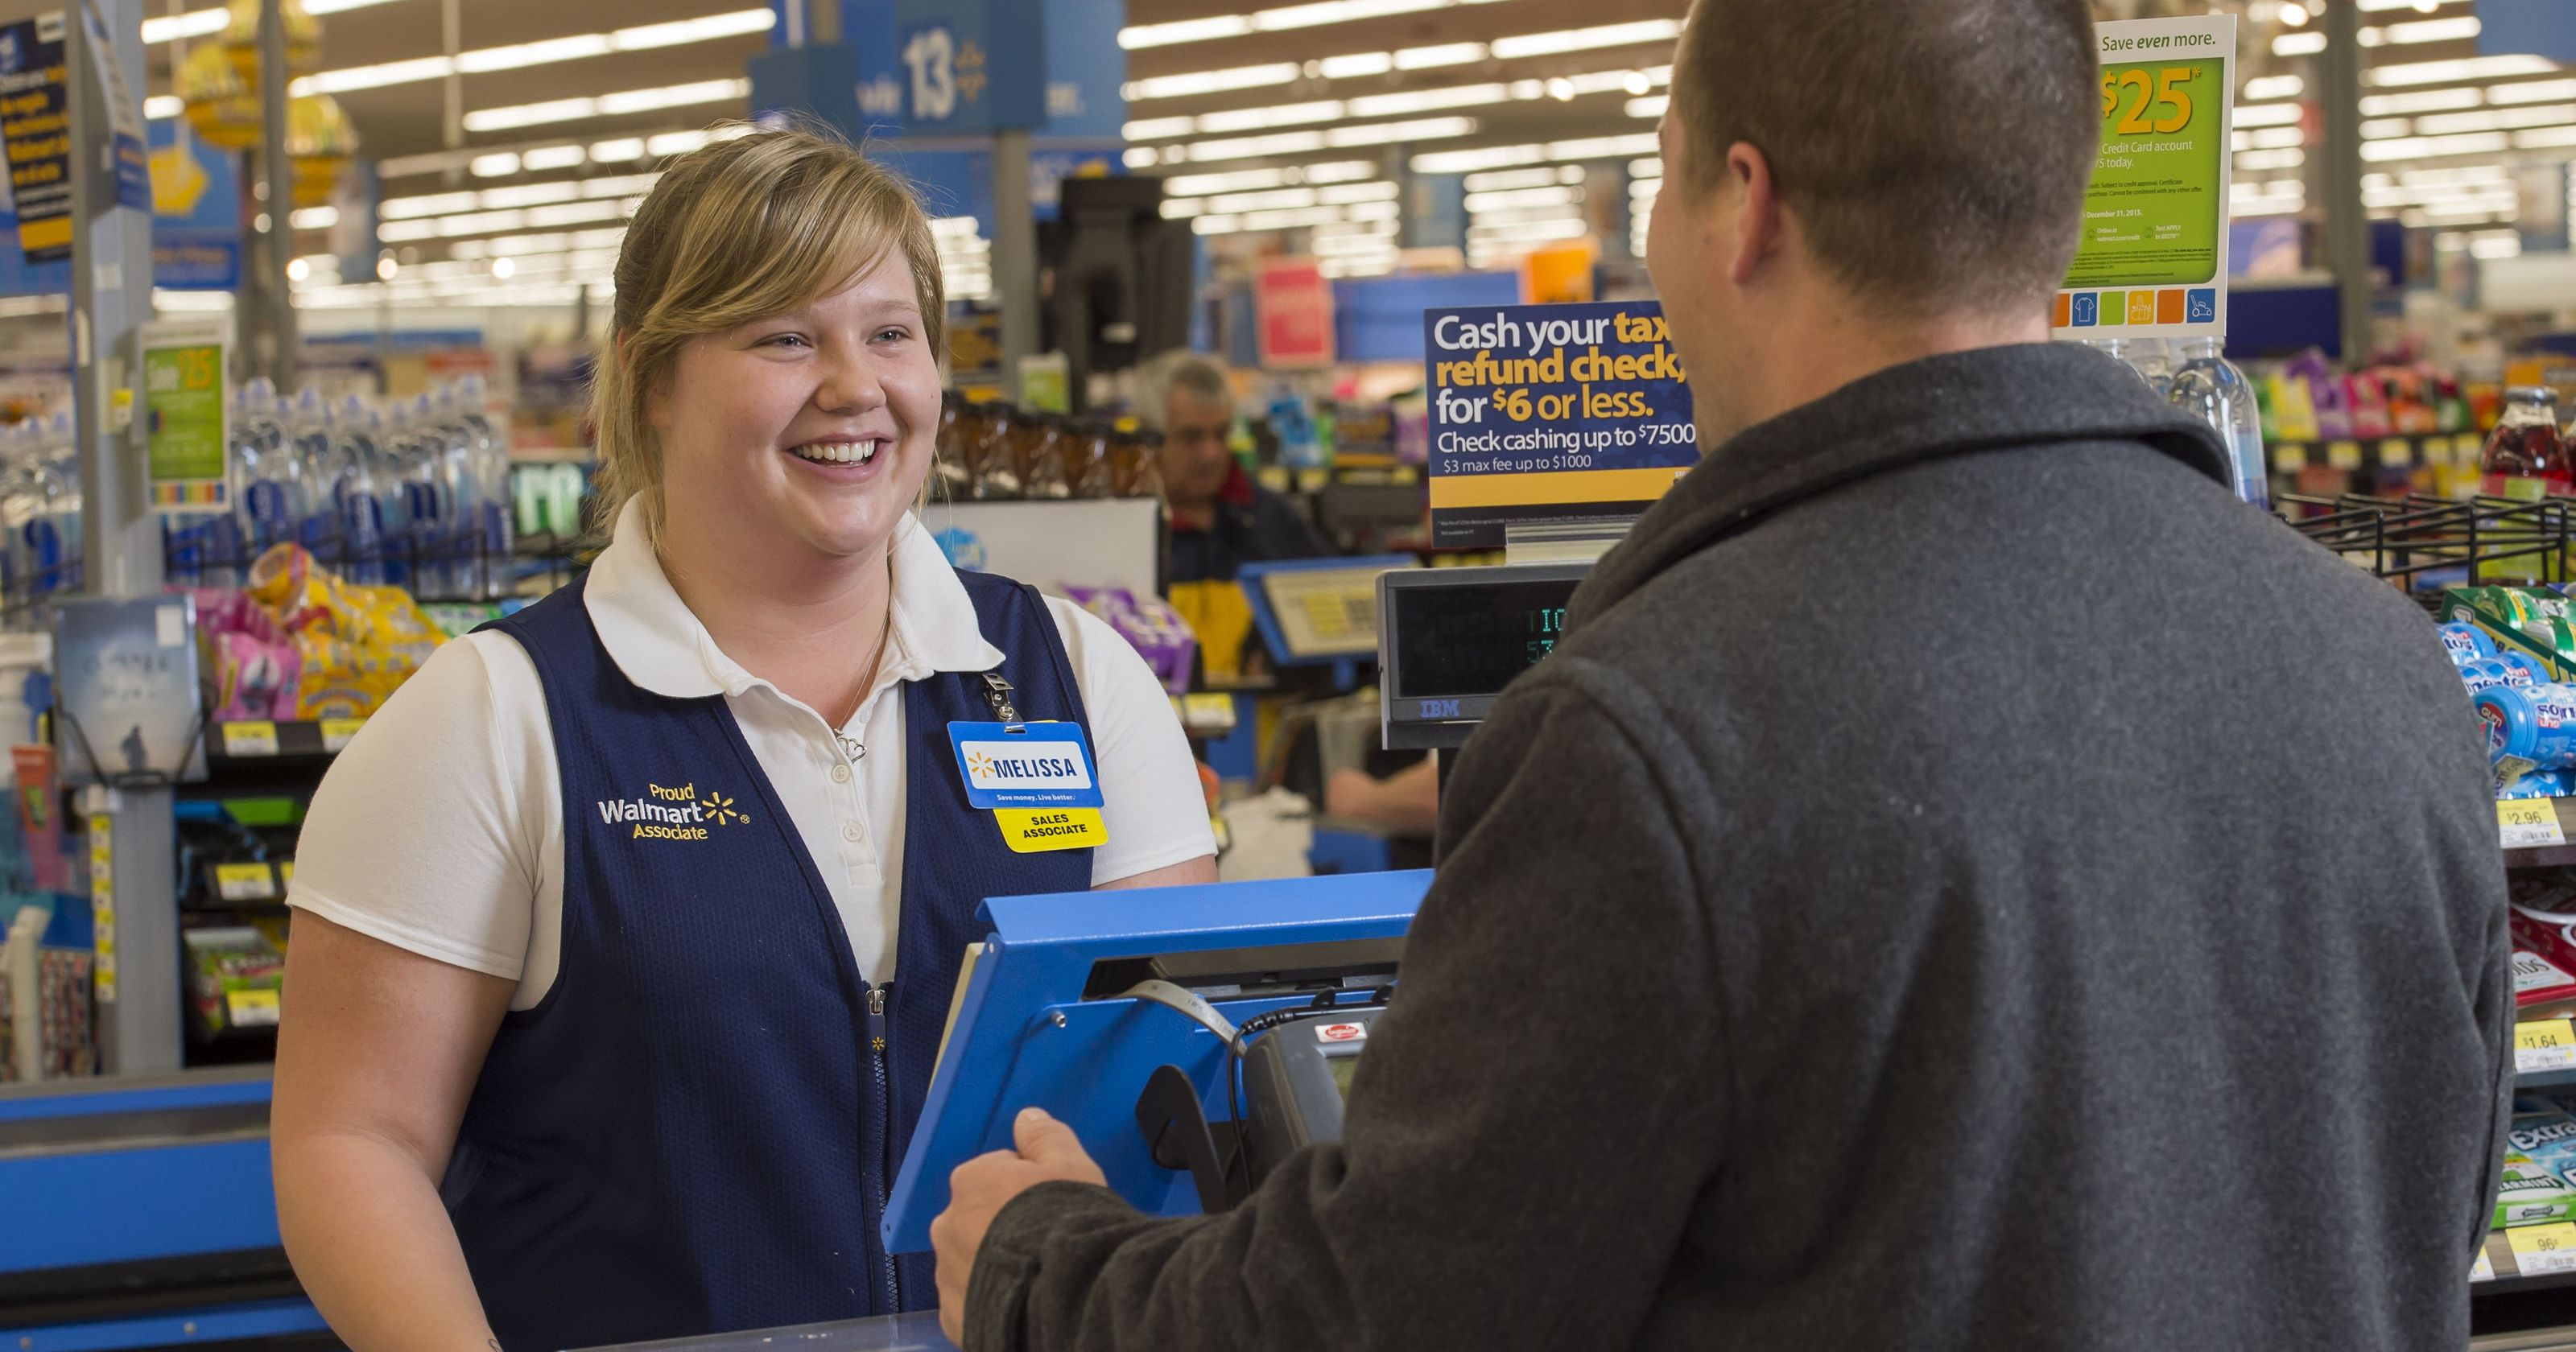 Walmart Check Cashing Hours Are Very Handy For The Customers The Business Accounting Importance Of Video Marketing